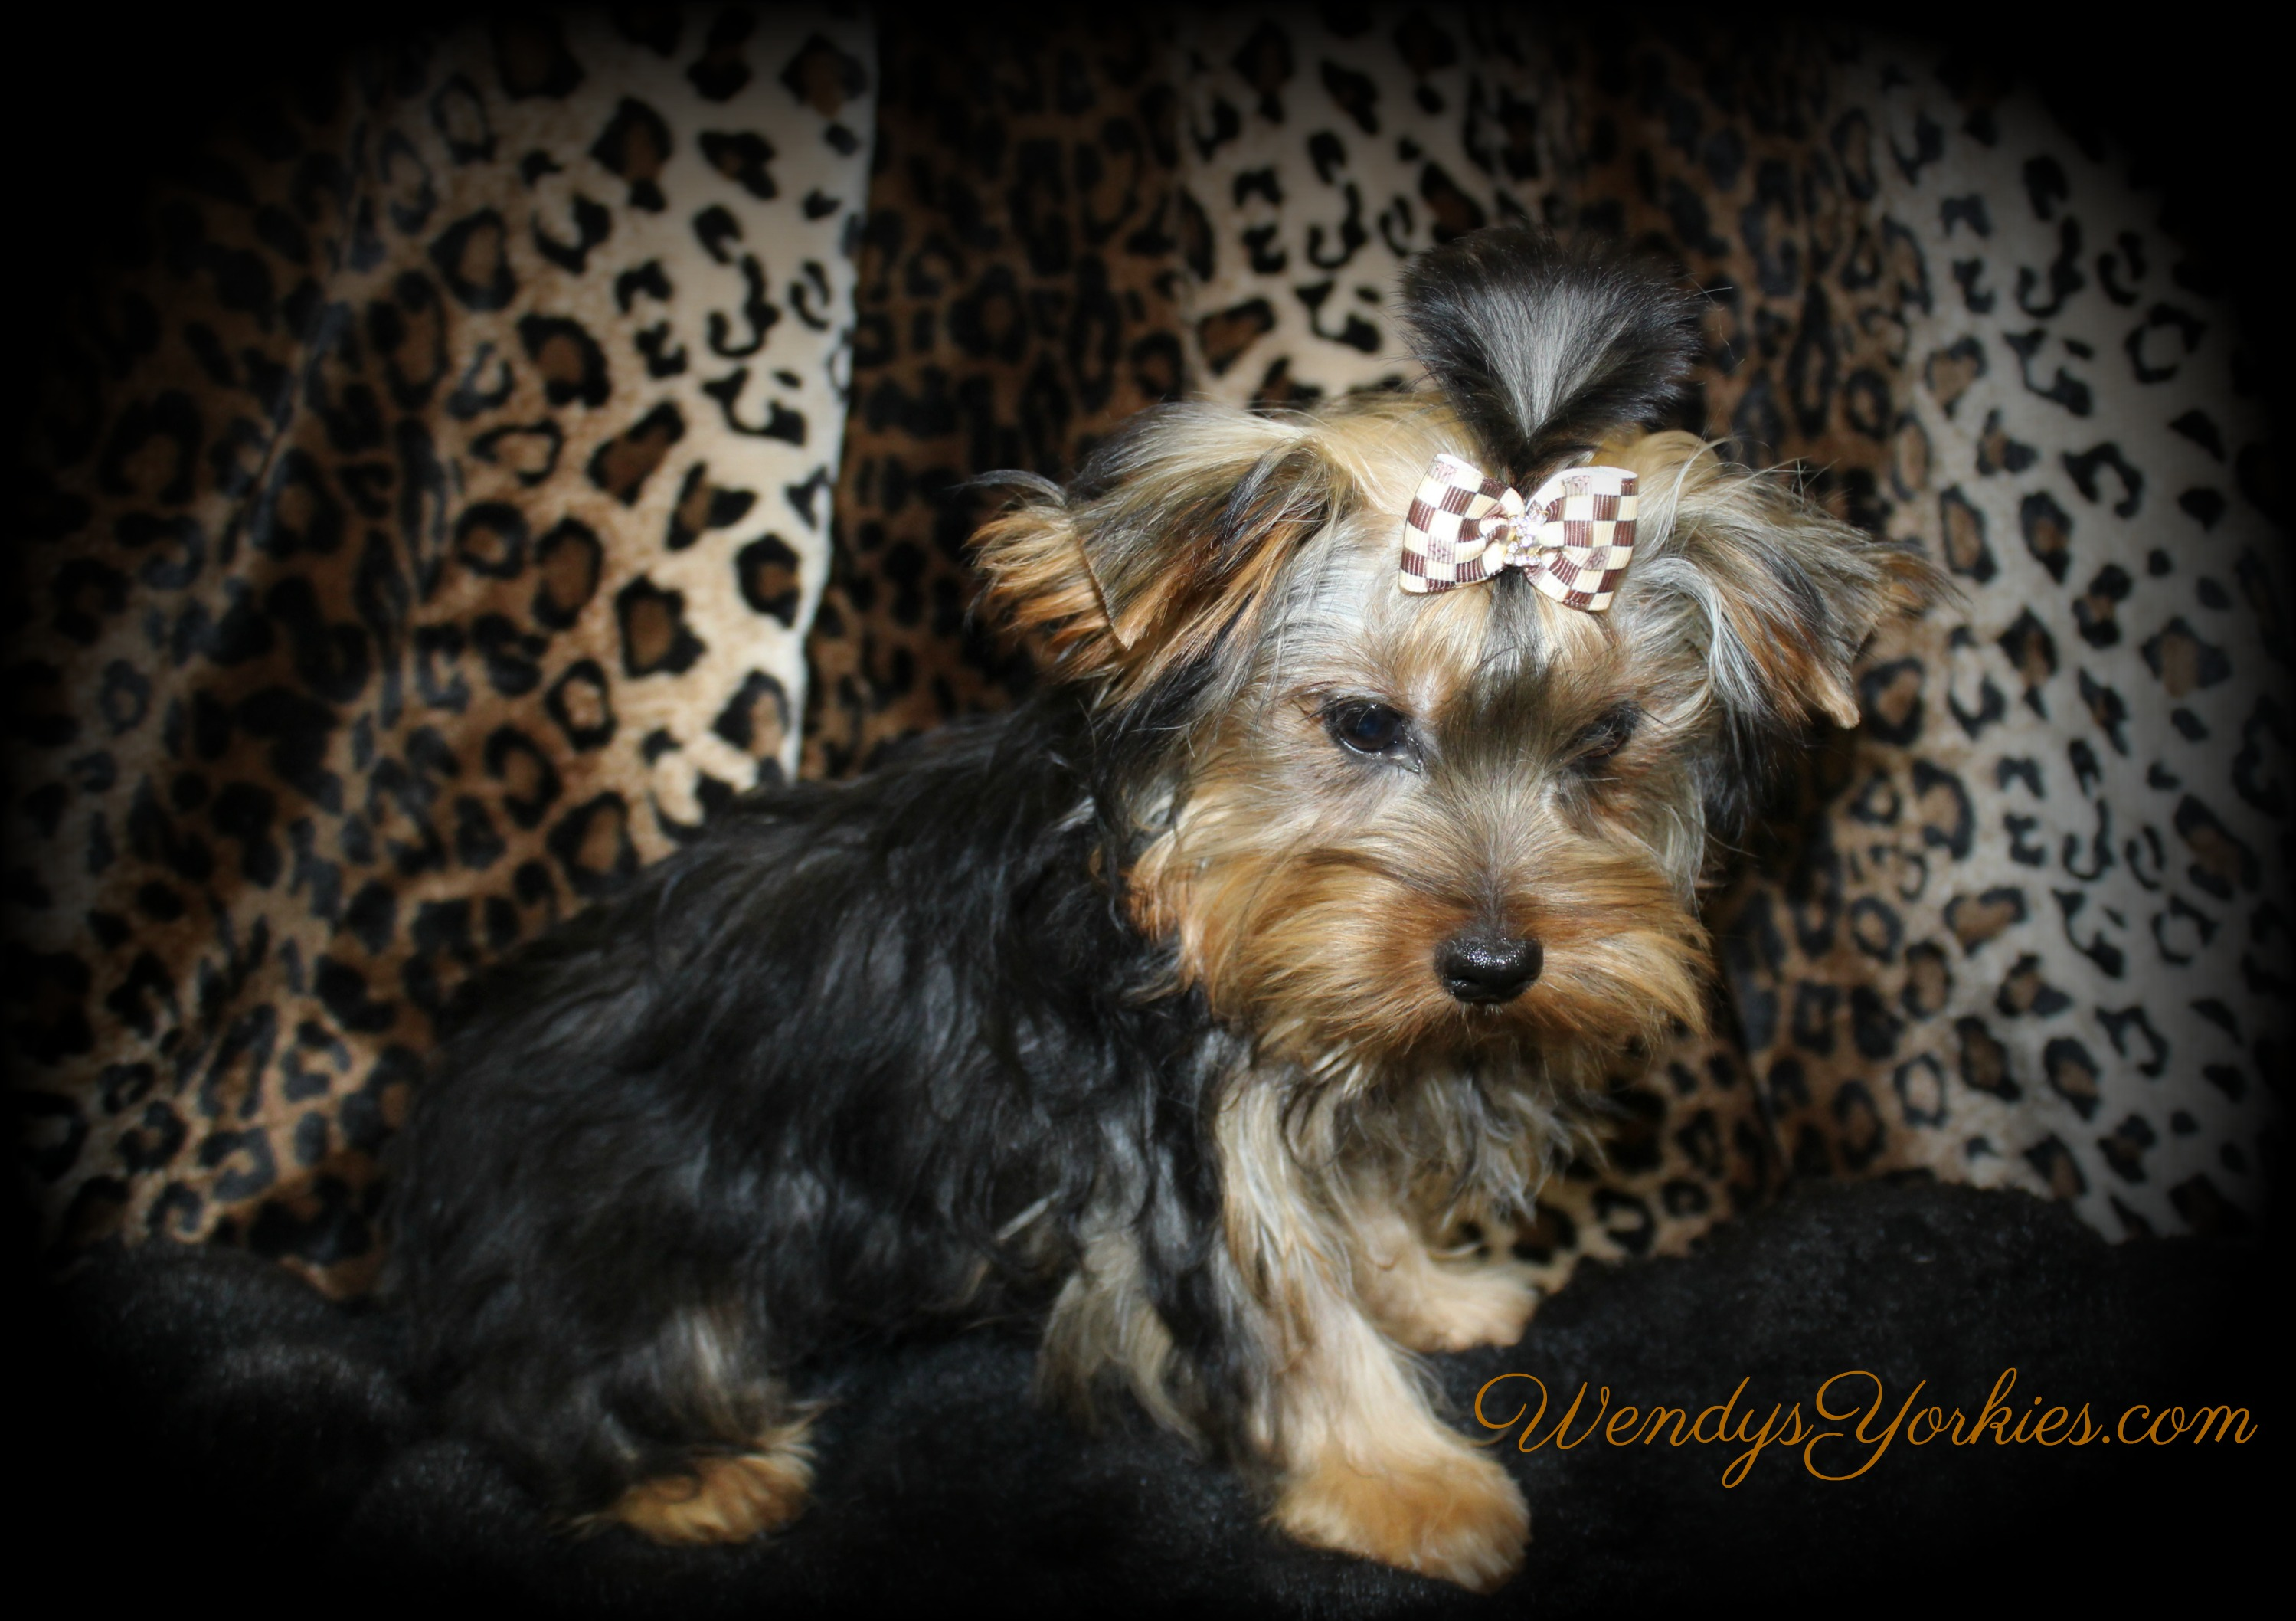 Cute Yorkie puppy for sale in Texas, Jax, WendysYorkies.com